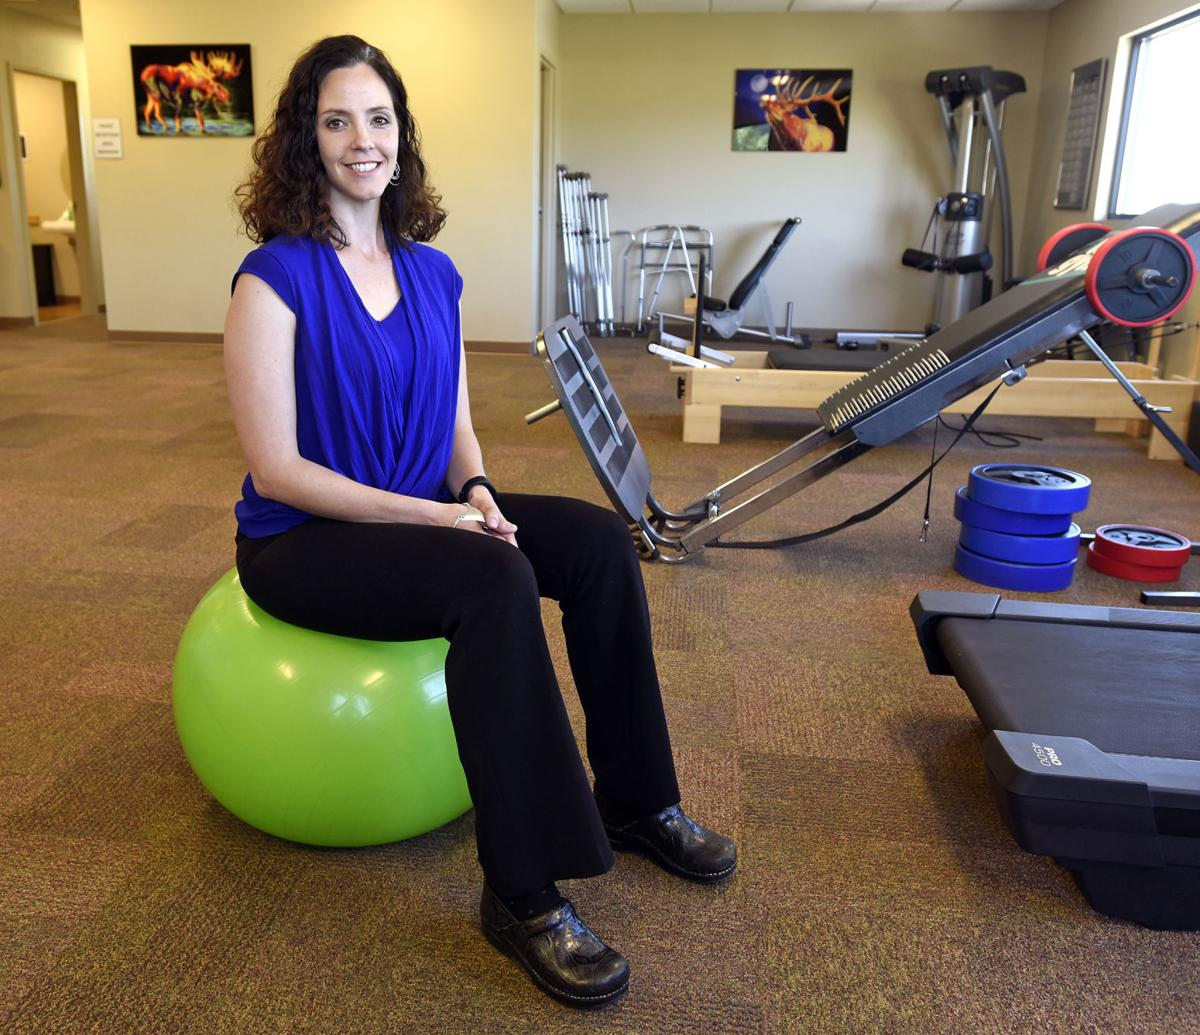 Buysell physical therapy equipment - Kate Skinner